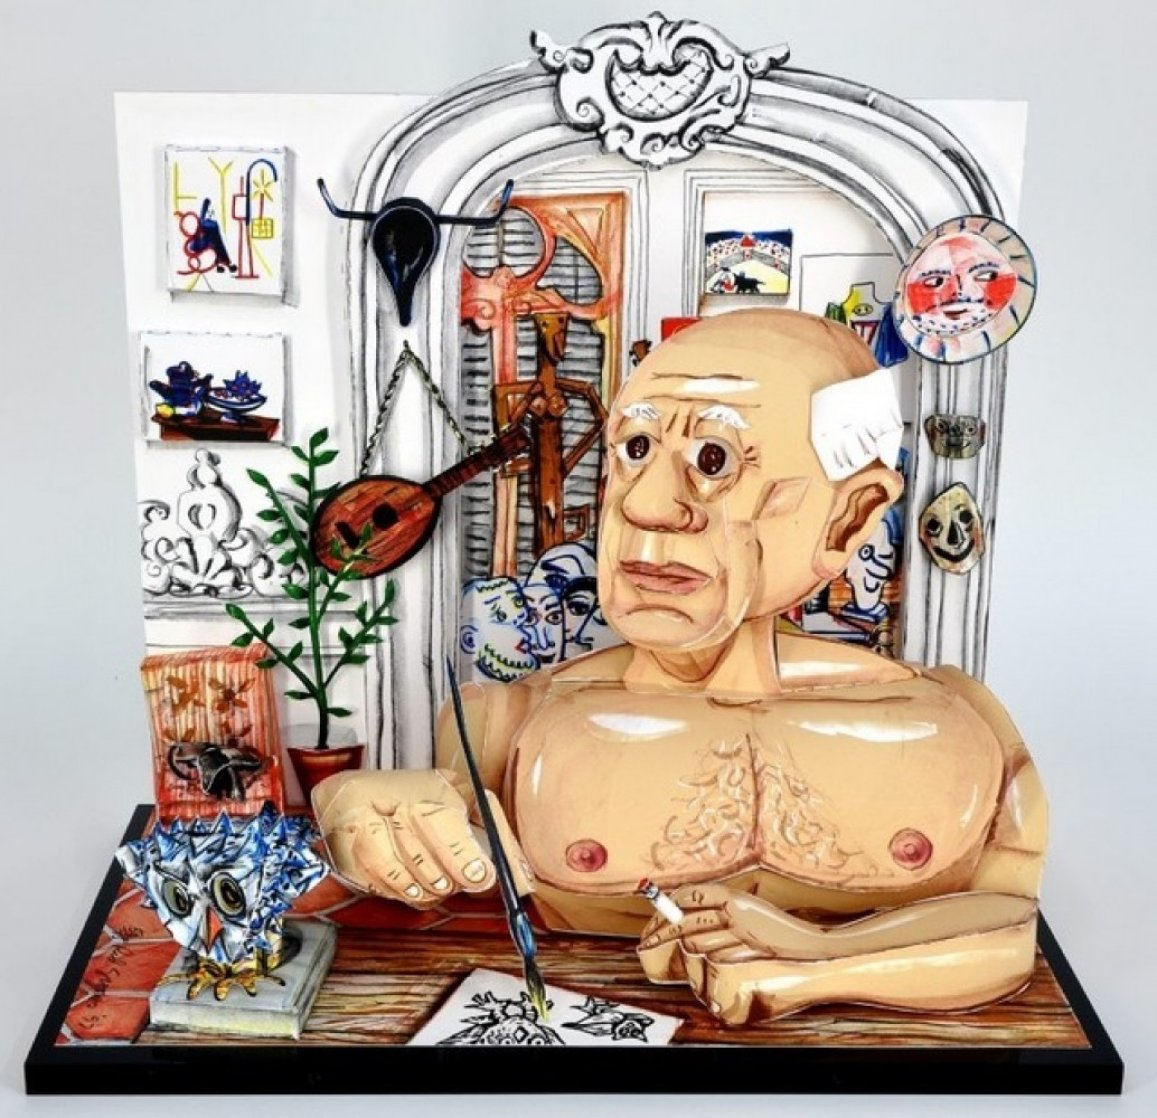 Picasso  Lithographic Sculpture 3-d 1997 23 in Sculpture by Red Grooms